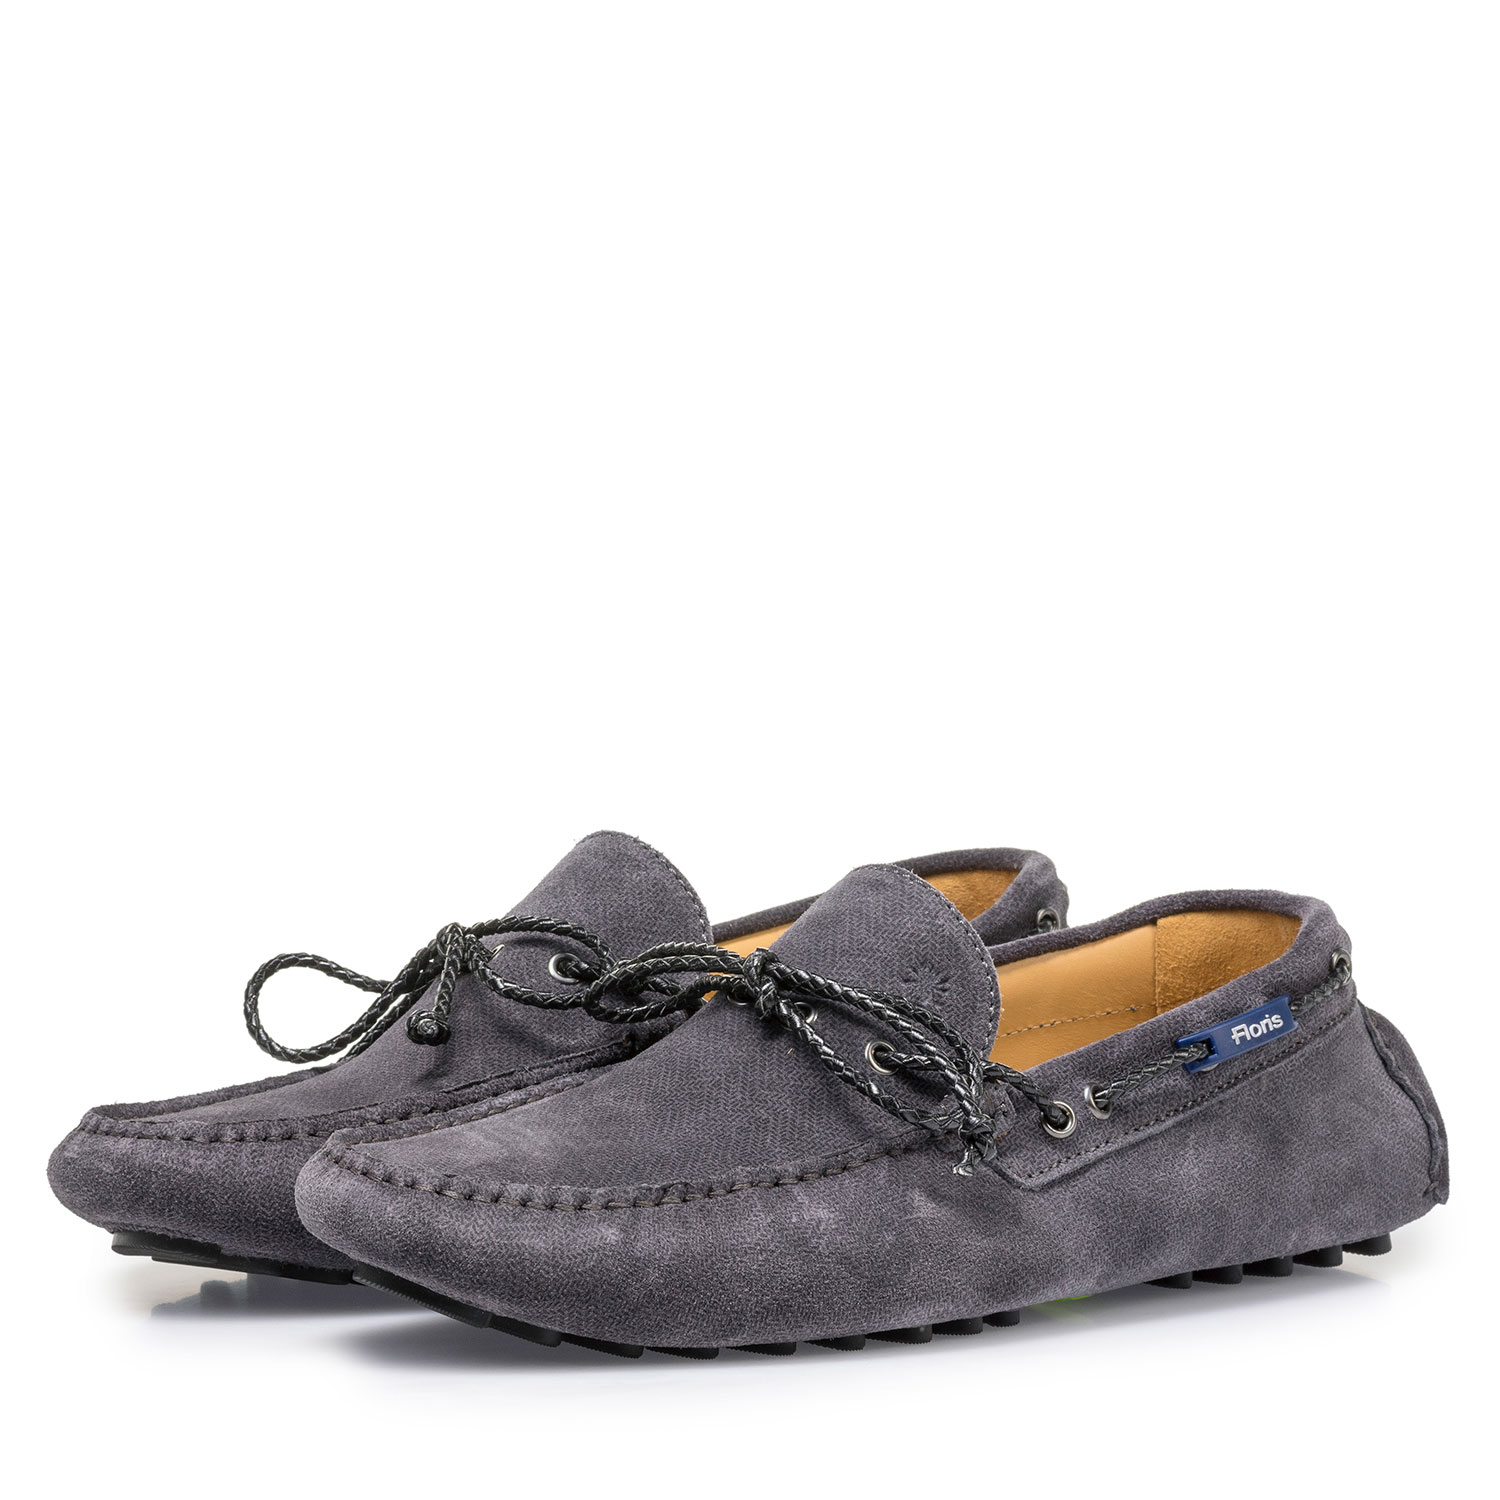 15214/10 - Dark grey suede leather moccasin with print